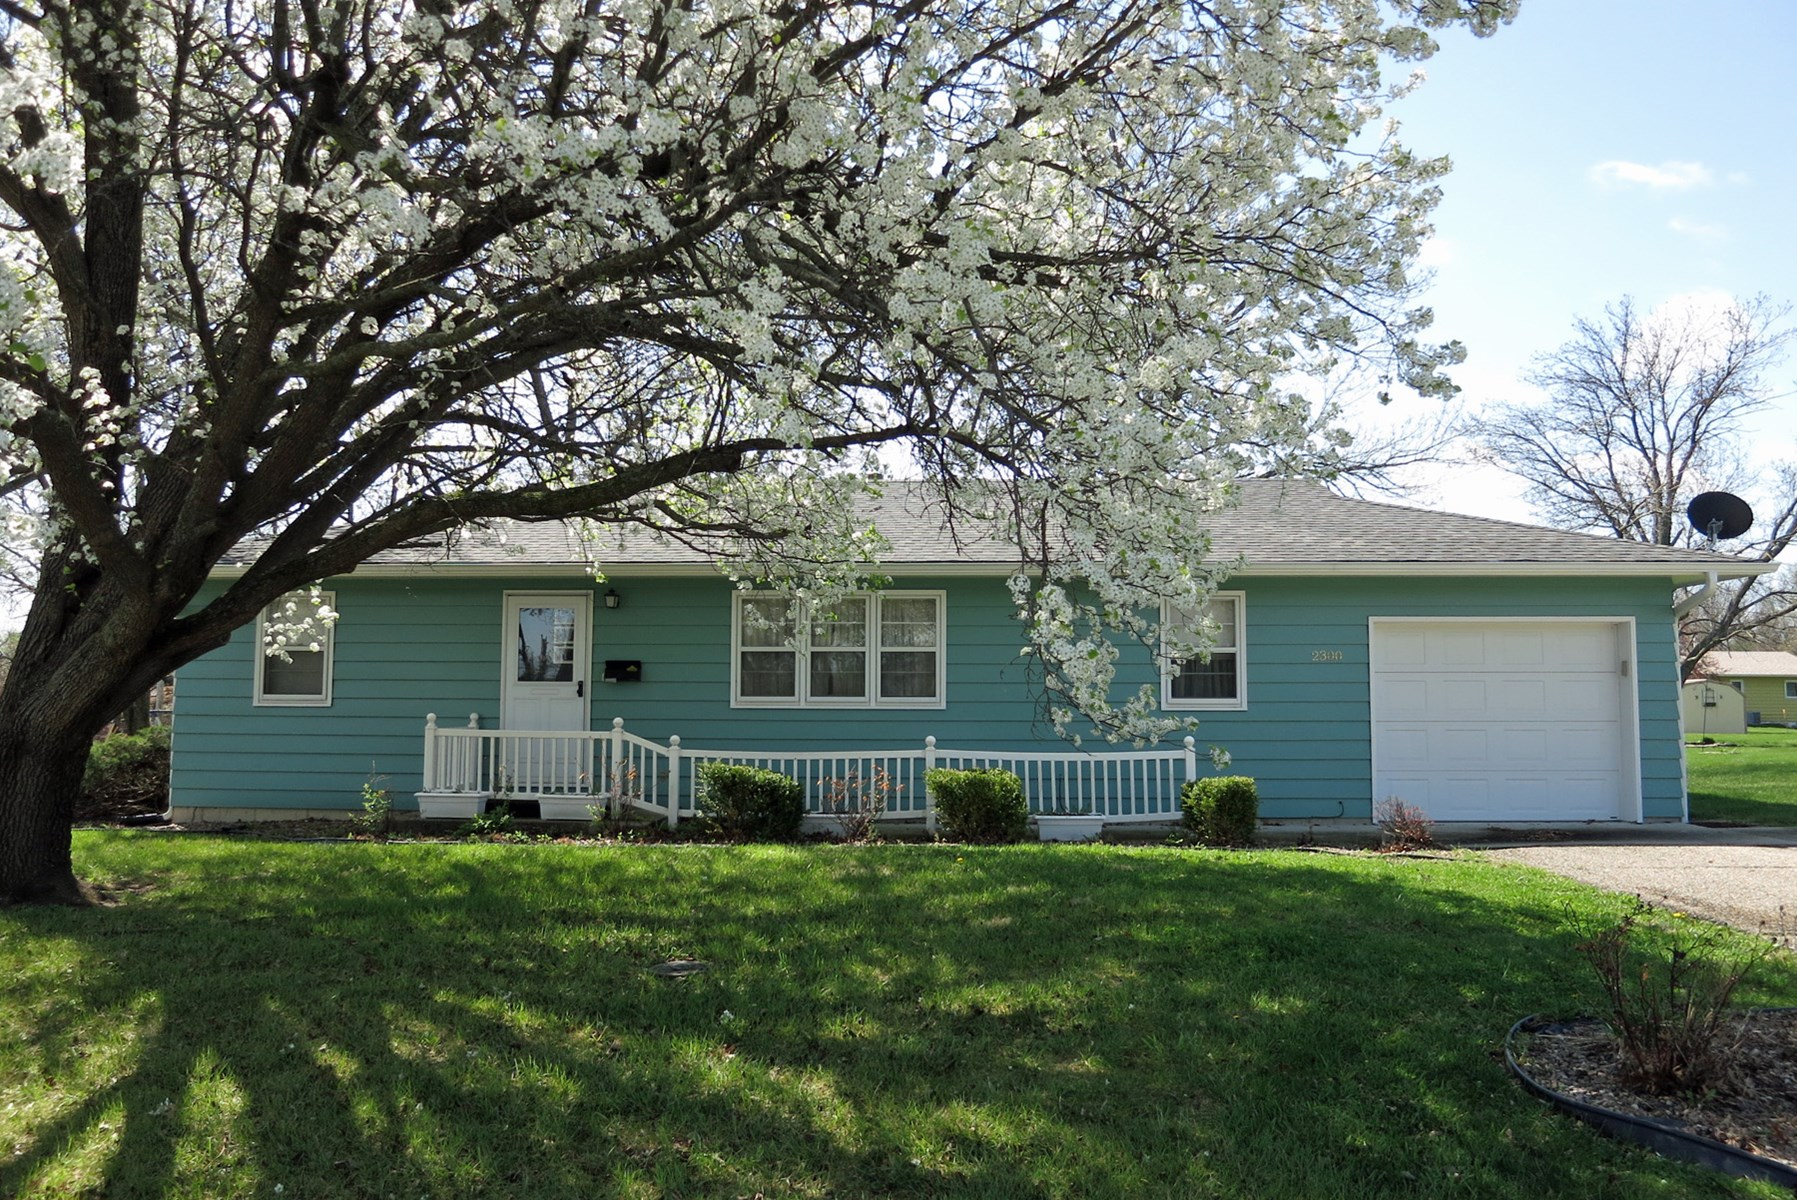 Ranch Home For Sale in Bethany MO